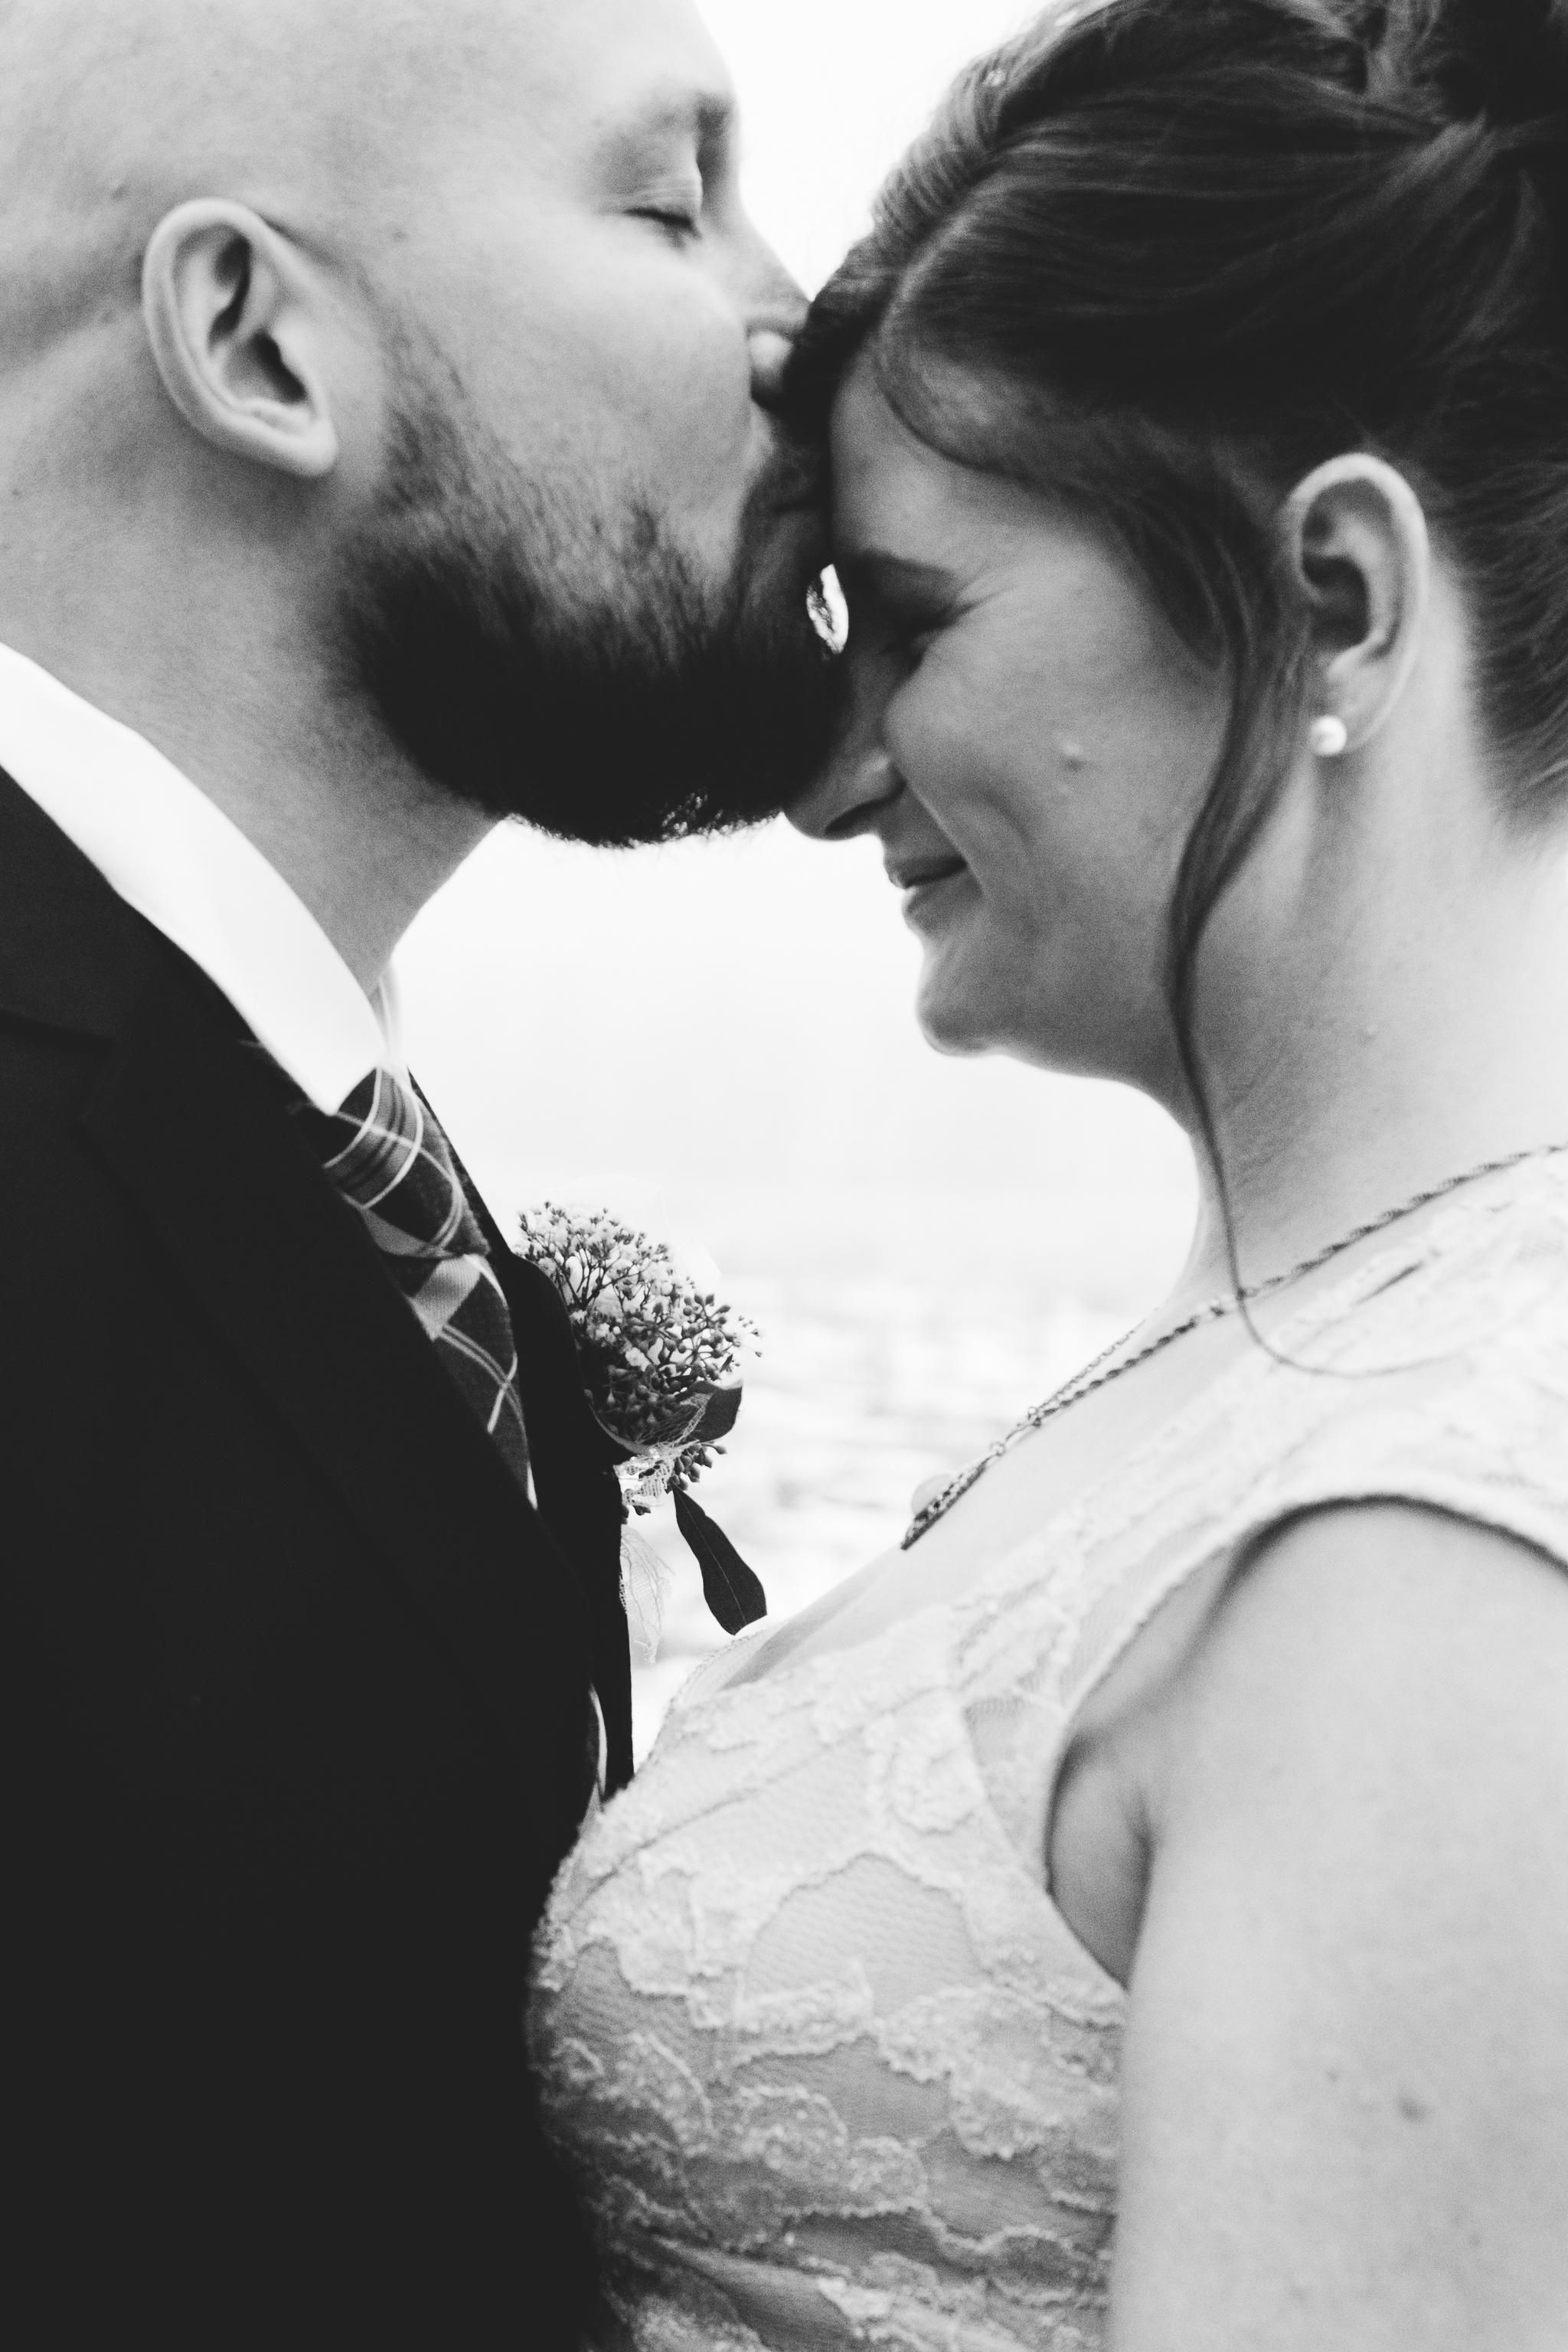 Black and white portrait of groom kissing bride on forehead in foggy Fish Creek park wedding